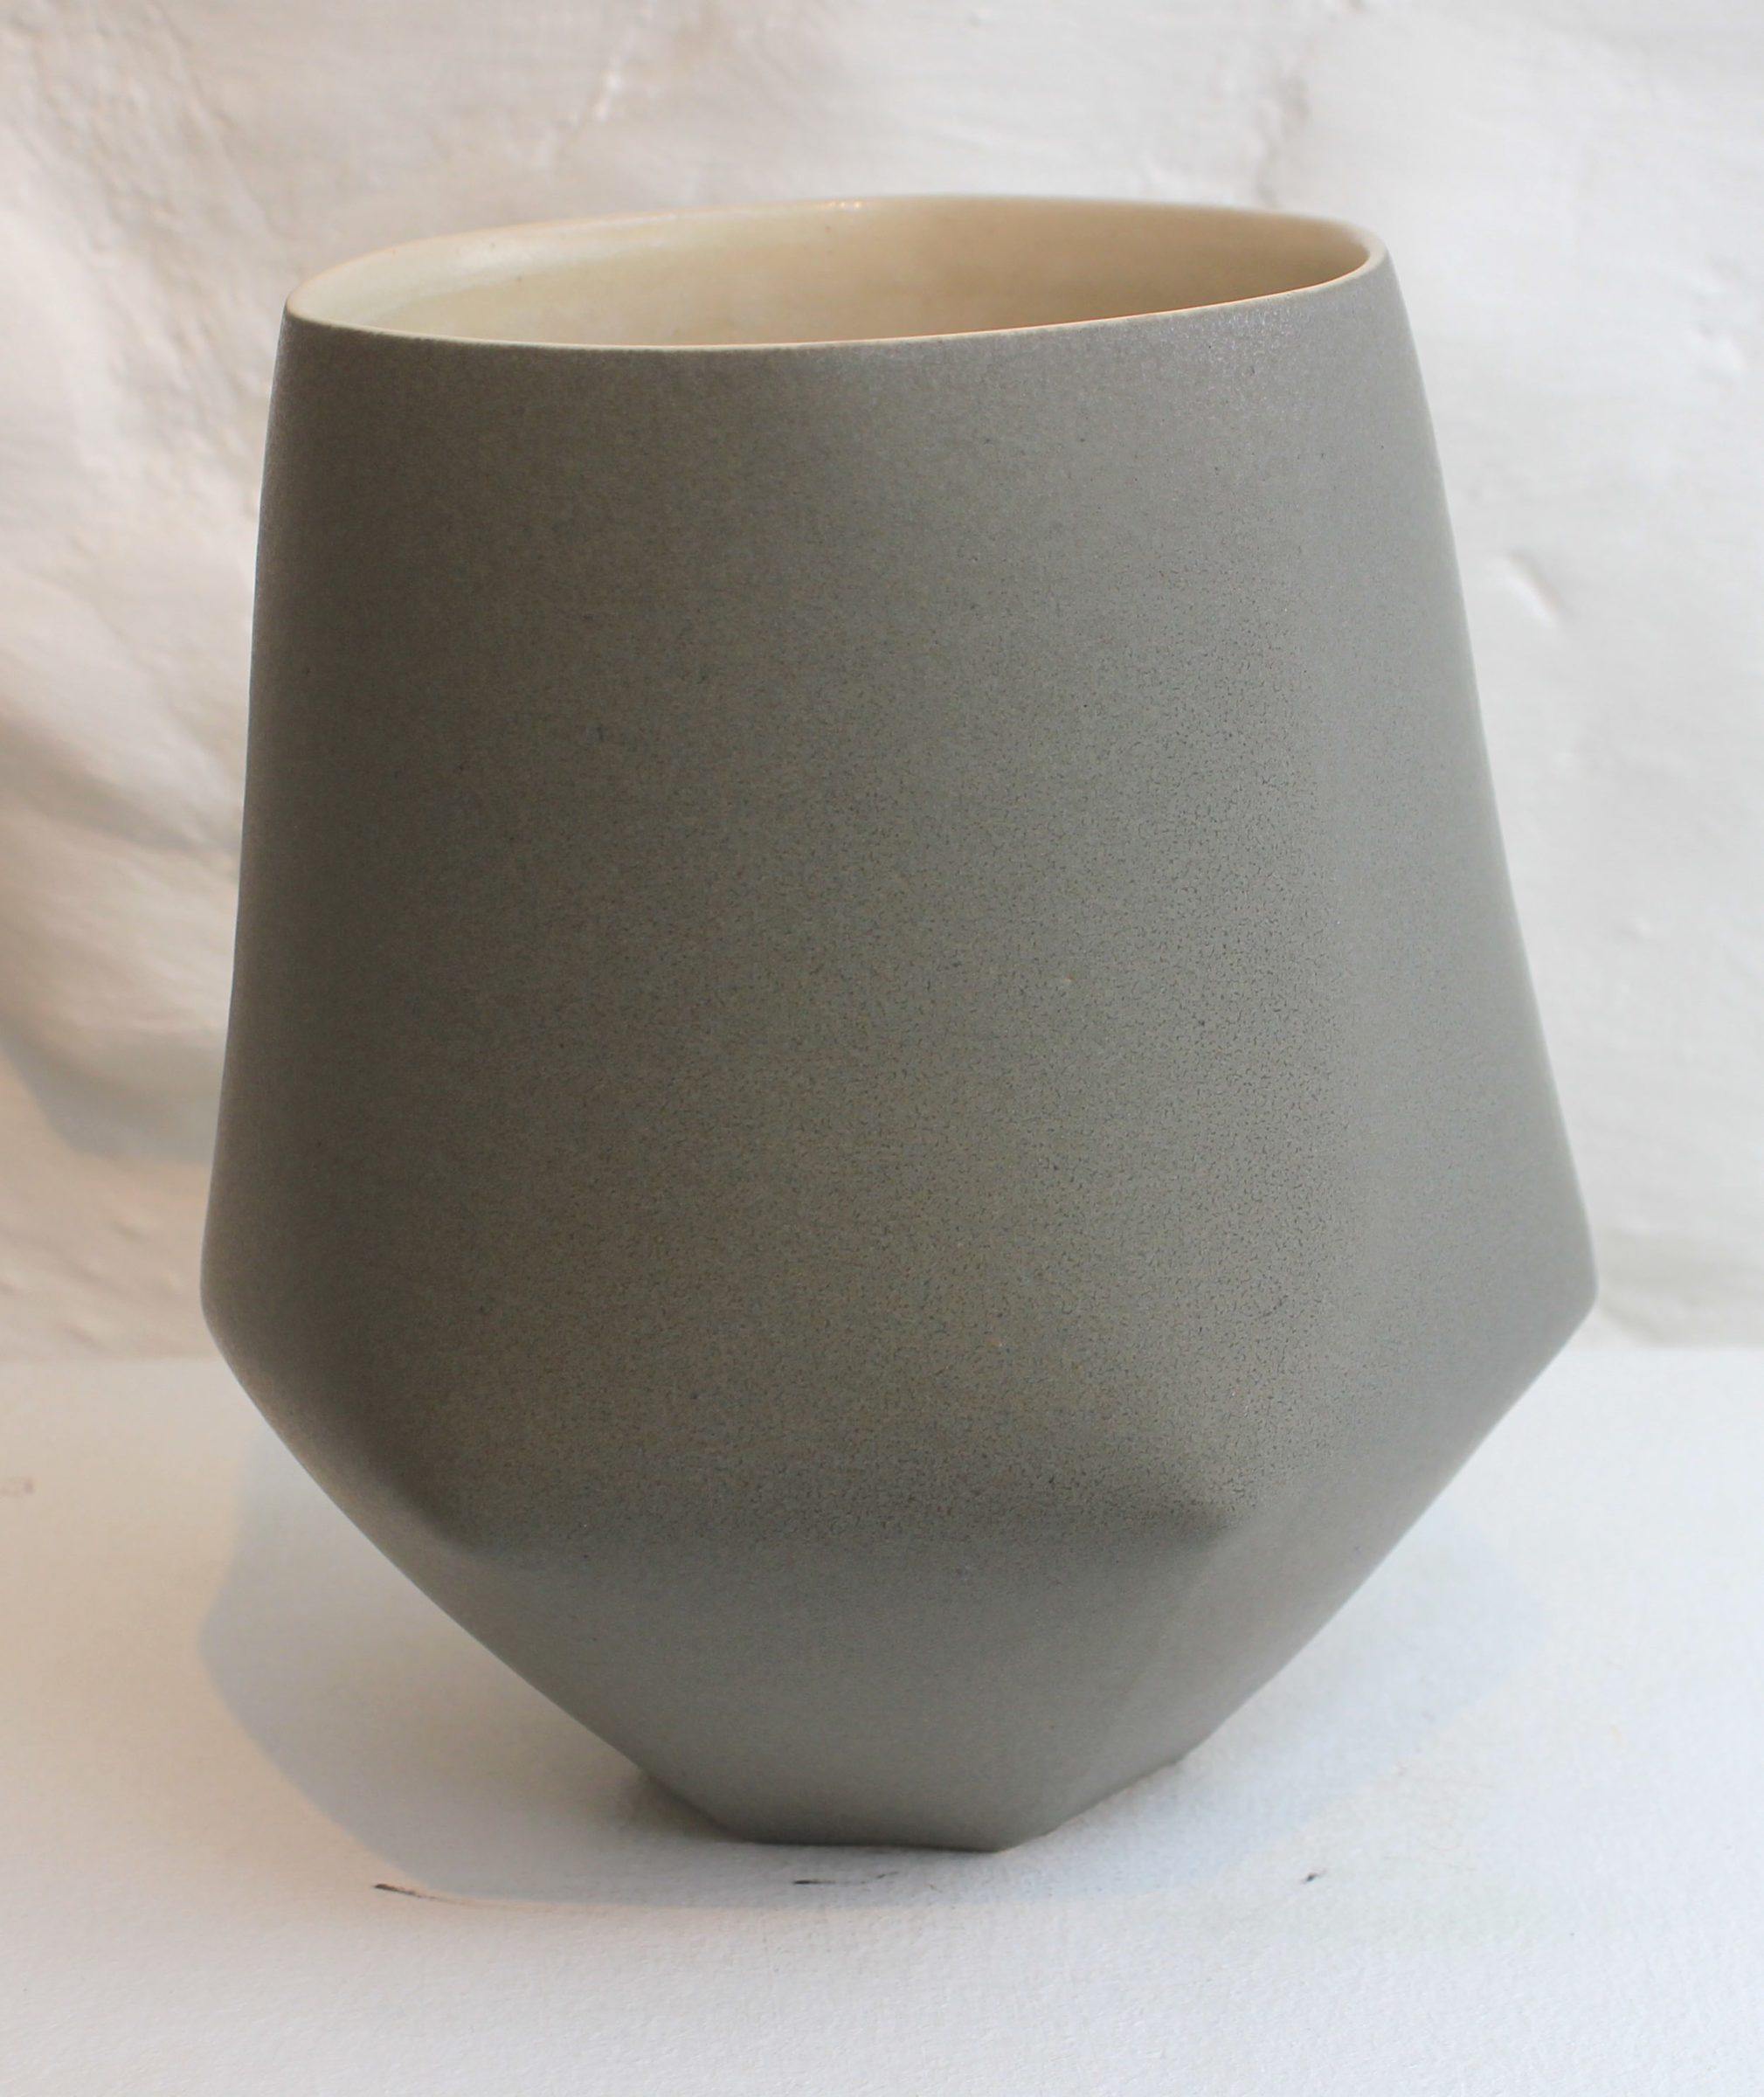 "<span class=""link fancybox-details-link""><a href=""/artists/33-sun-kim/works/5737-sun-kim-medium-vase-2018/"">View Detail Page</a></span><div class=""artist""><strong>Sun Kim</strong></div> <div class=""title""><em>Medium Vase</em>, 2018</div> <div class=""signed_and_dated"">stamped by the artist</div> <div class=""medium"">porcelain</div> <div class=""dimensions"">15 x 15 x 11 cm<br /> 5 7/8 x 5 7/8 x 4 3/8 inches</div><div class=""price"">£300.00</div><div class=""copyright_line"">OwnArt: £ 30 x 10 Months, 0% APR</div>"